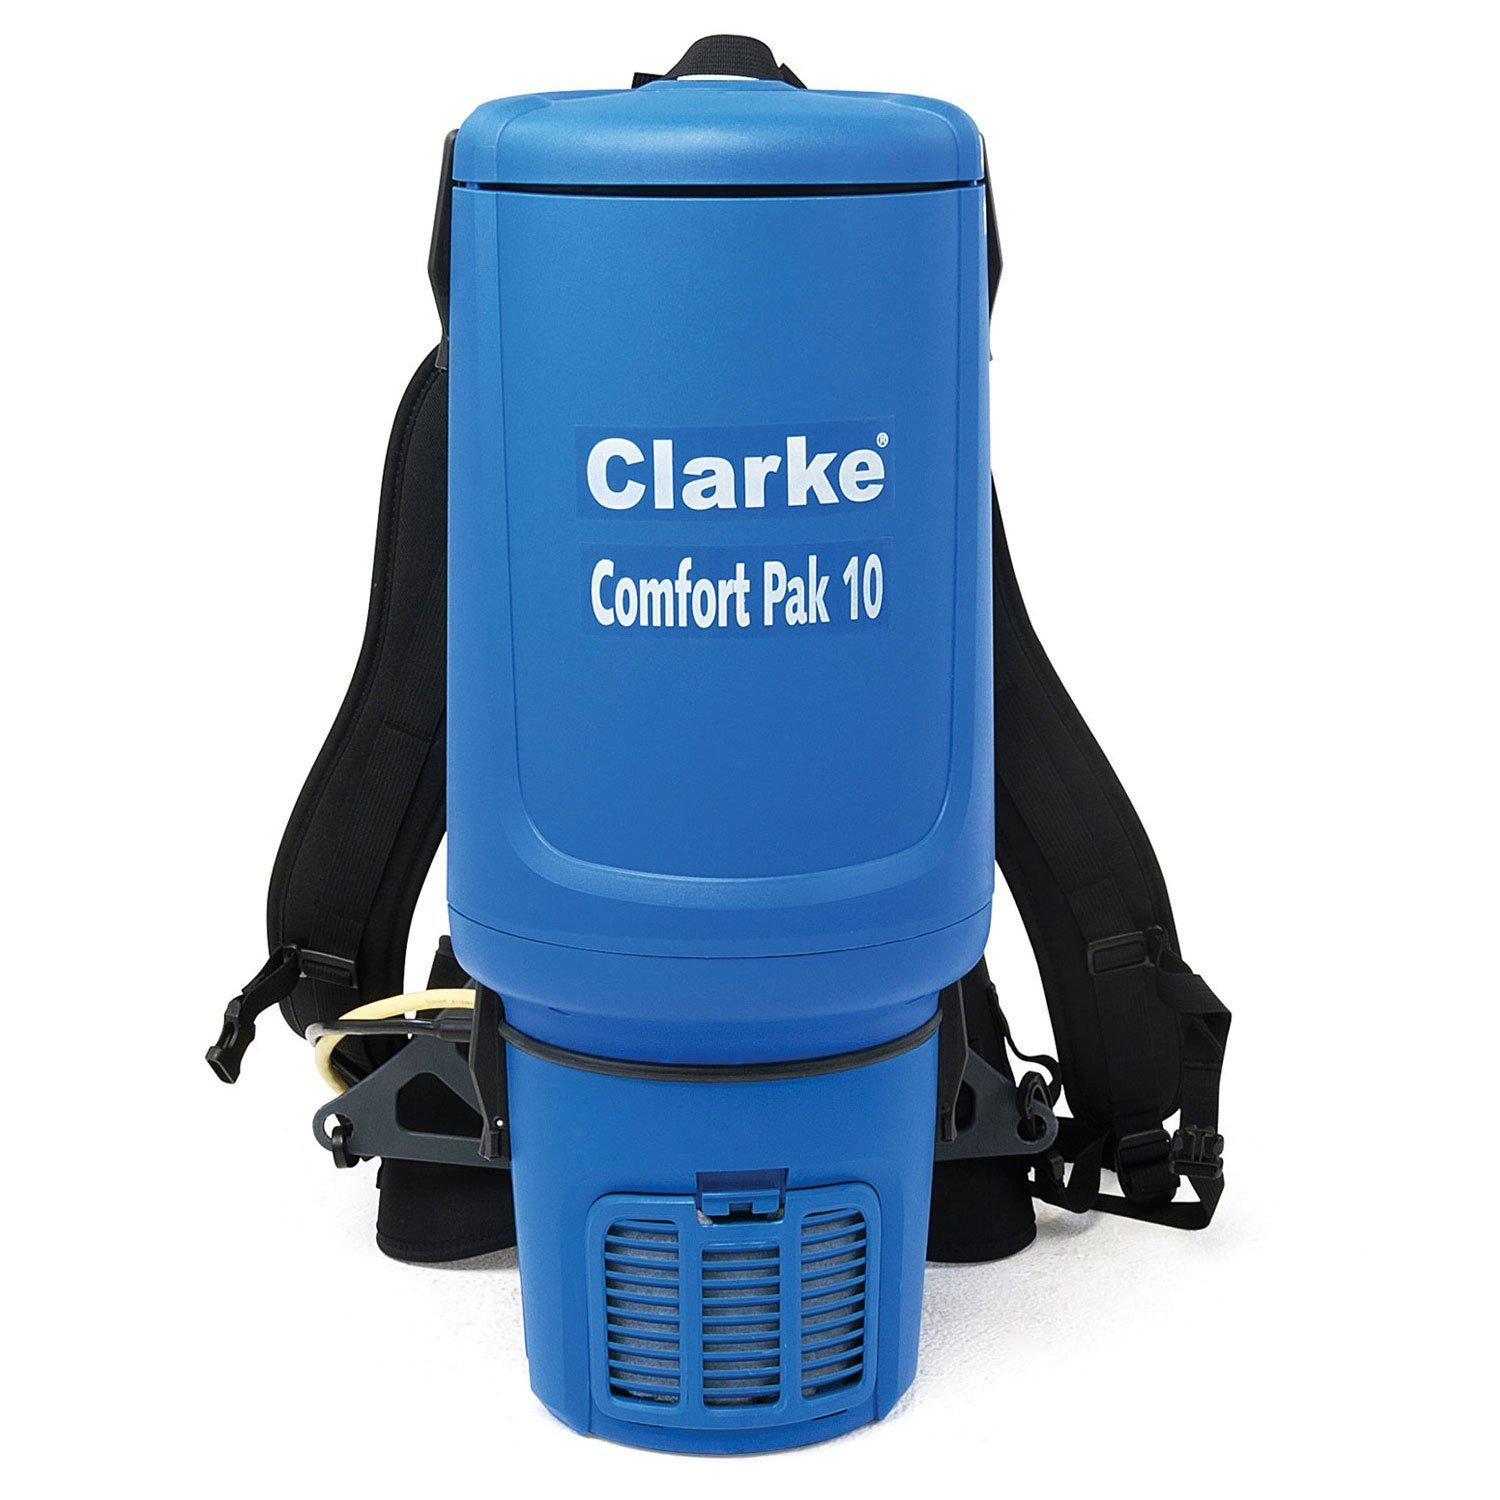 Clarke Comfort Pak 10 Qt. with Tool Kit Backpack Vacuum